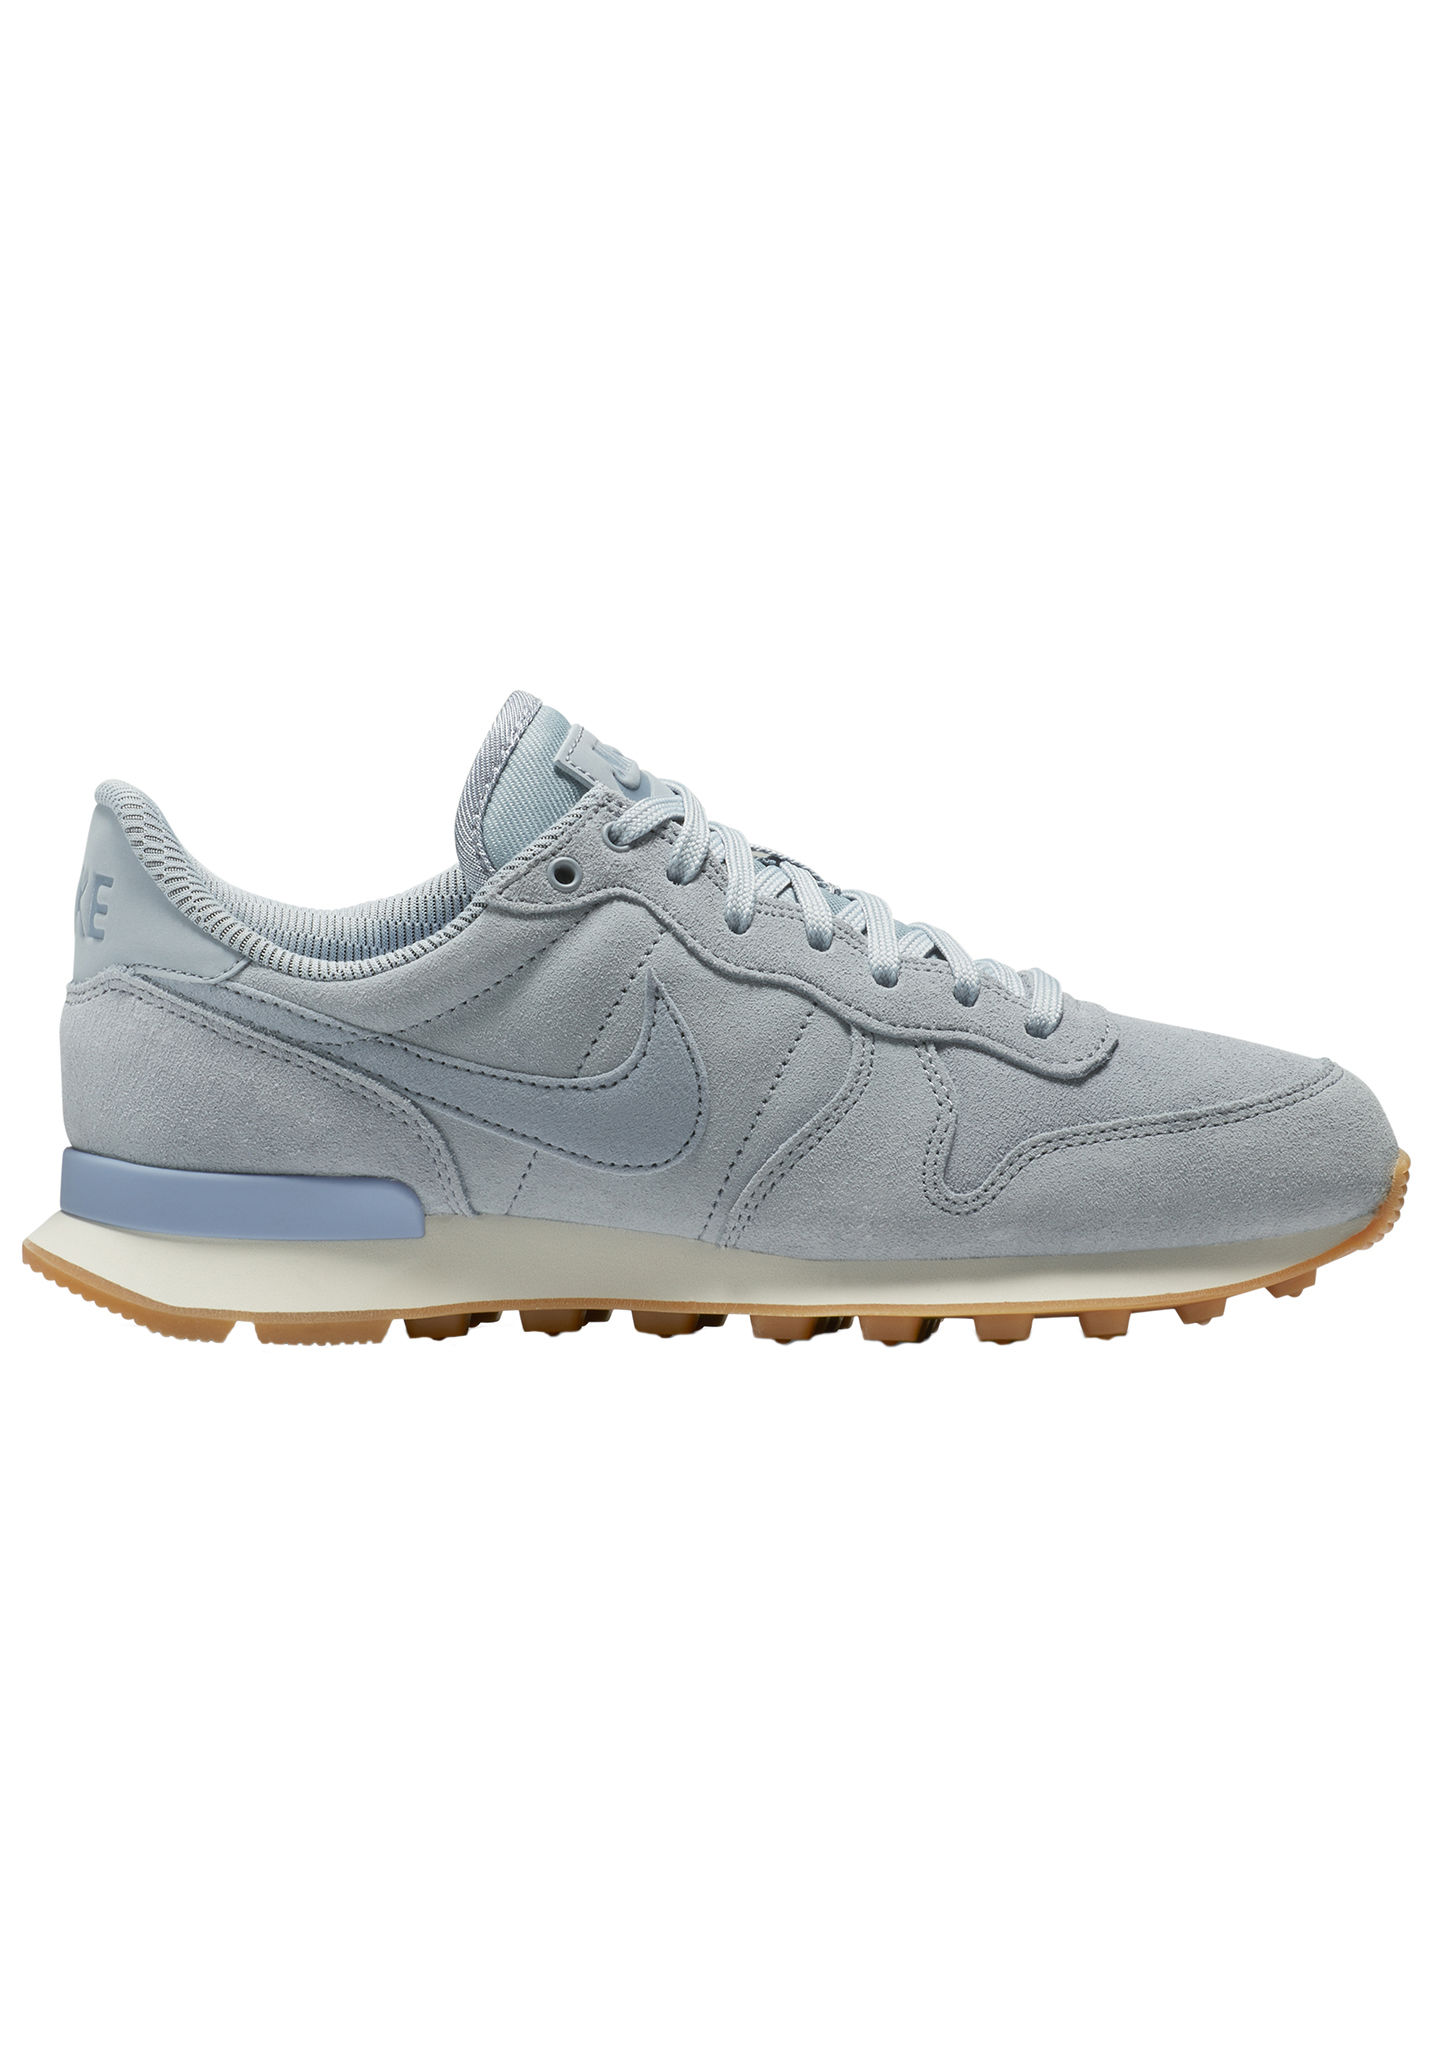 07b071abf16efc NIKE SPORTSWEAR Internationalist SE - Sneaker für Damen - Blau - Planet  Sports